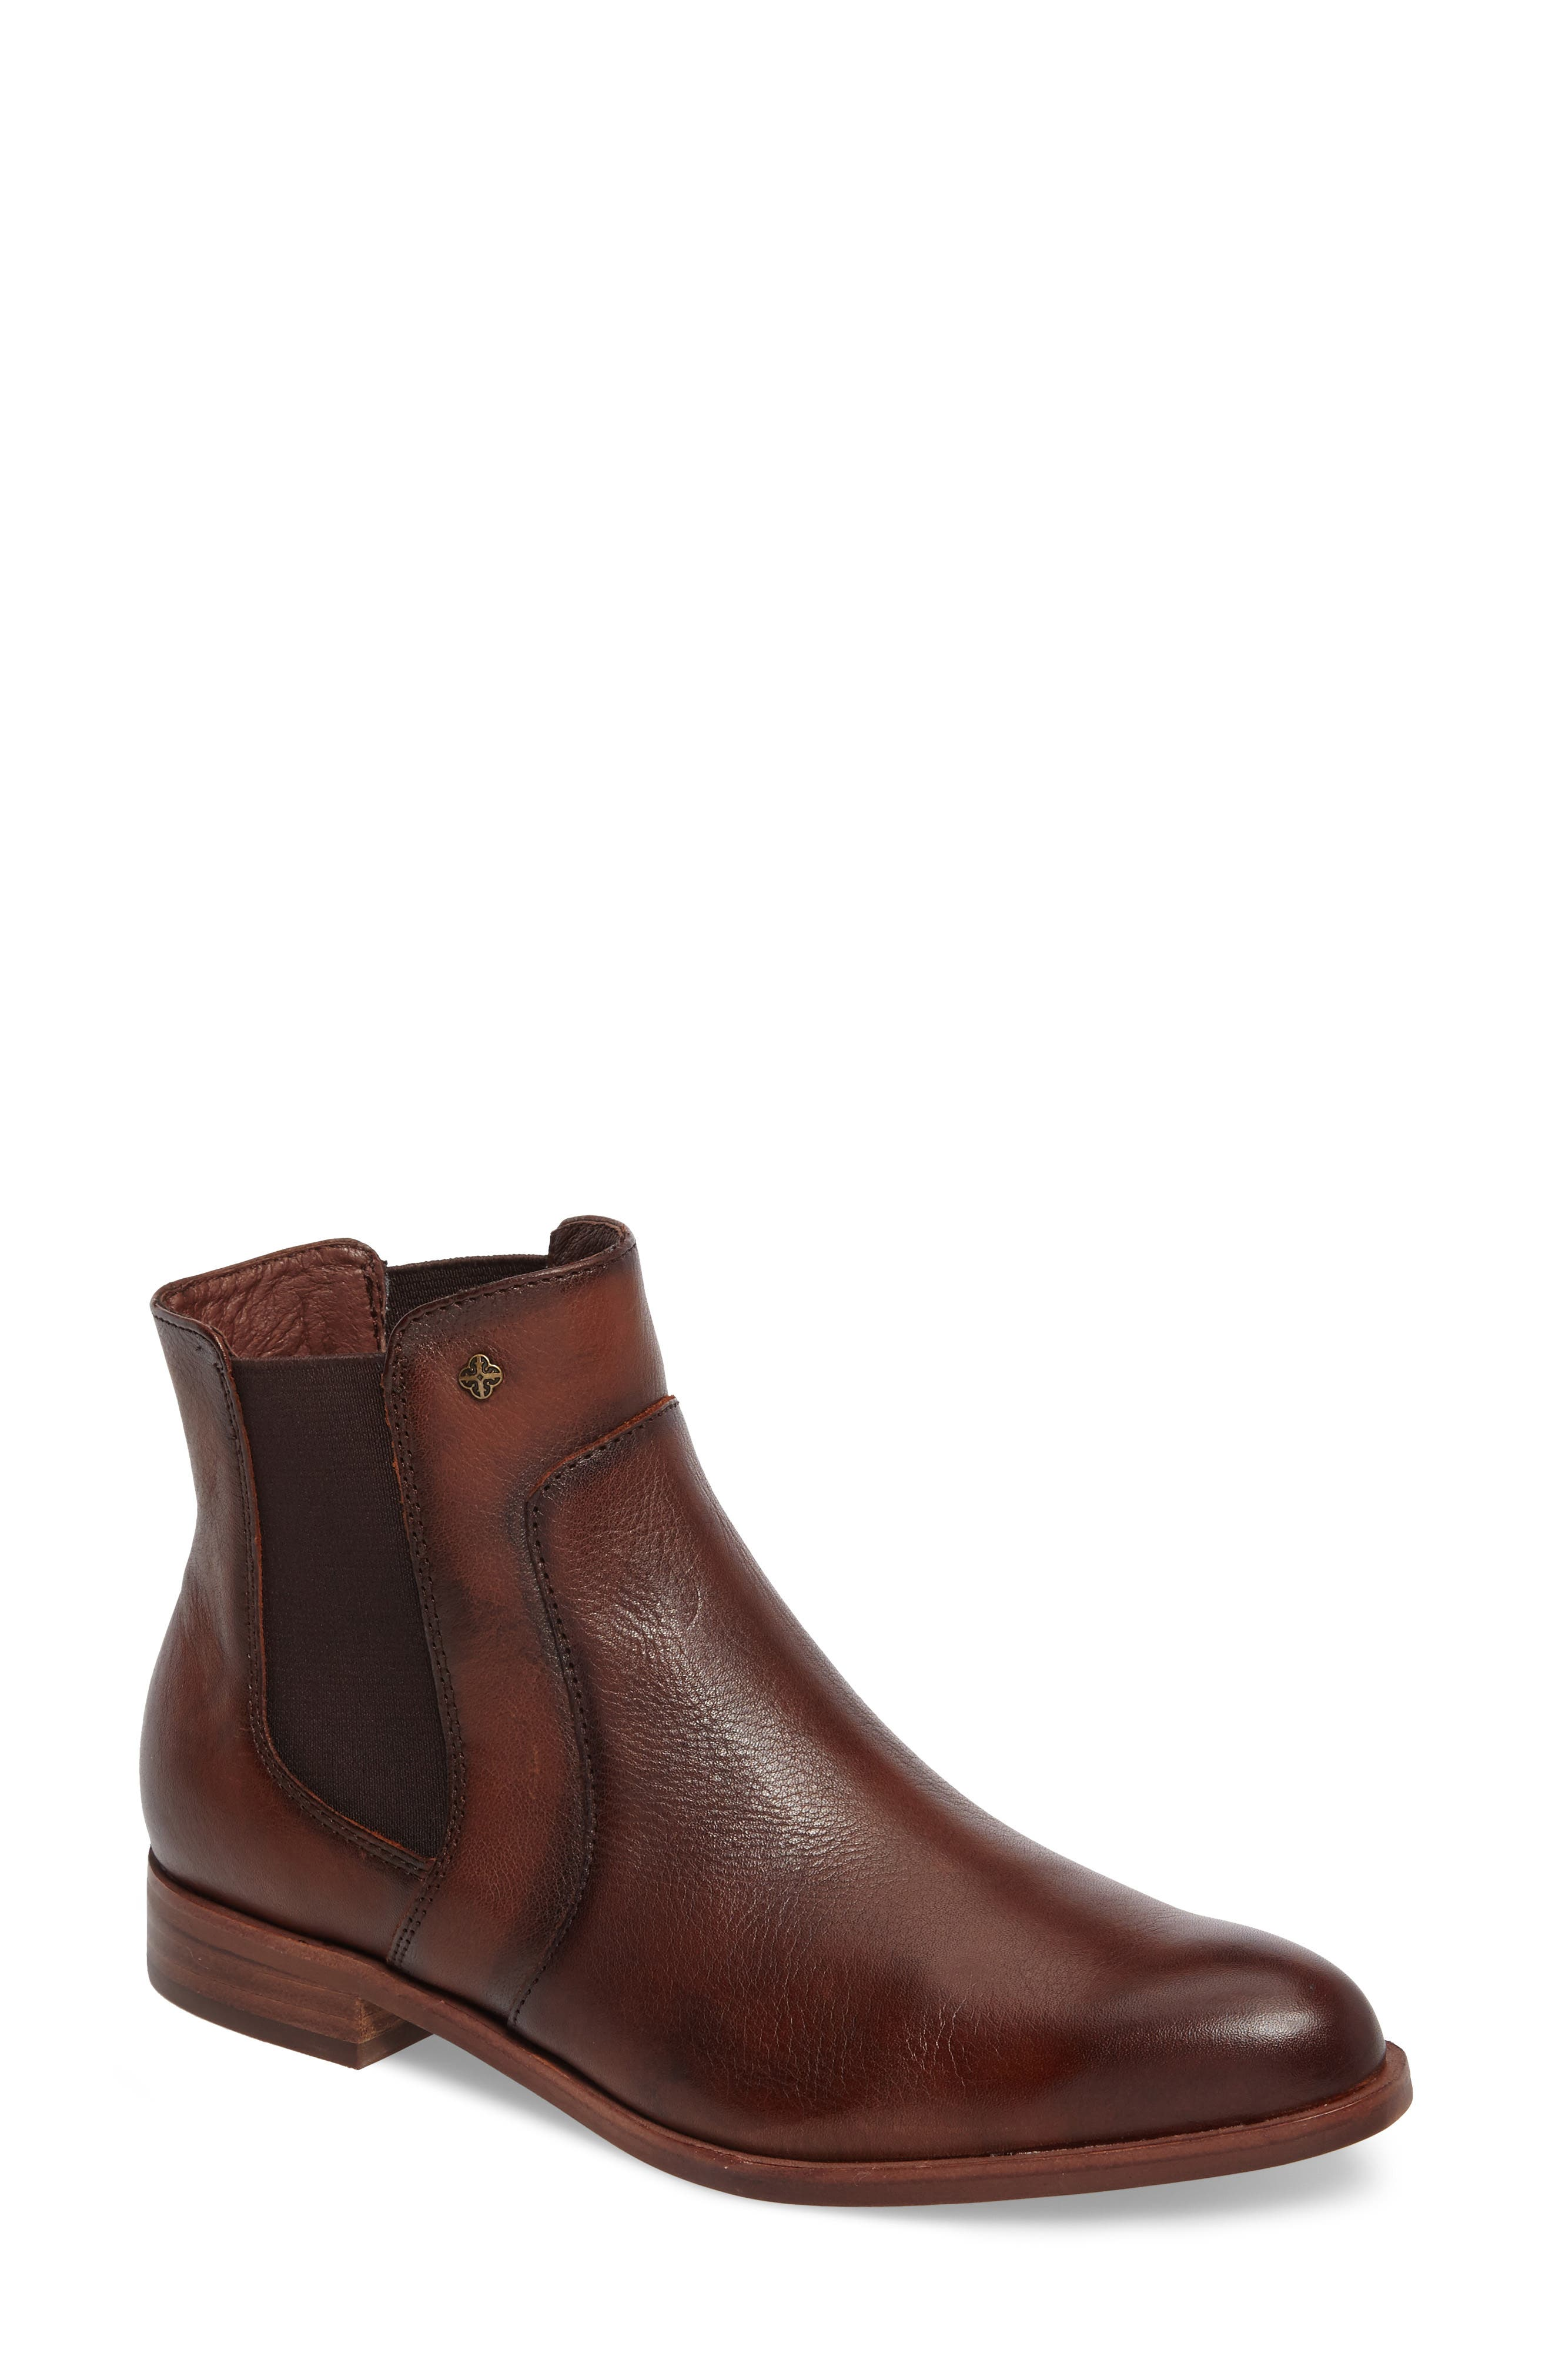 Mora Bootie,                         Main,                         color, Whiskey Leather